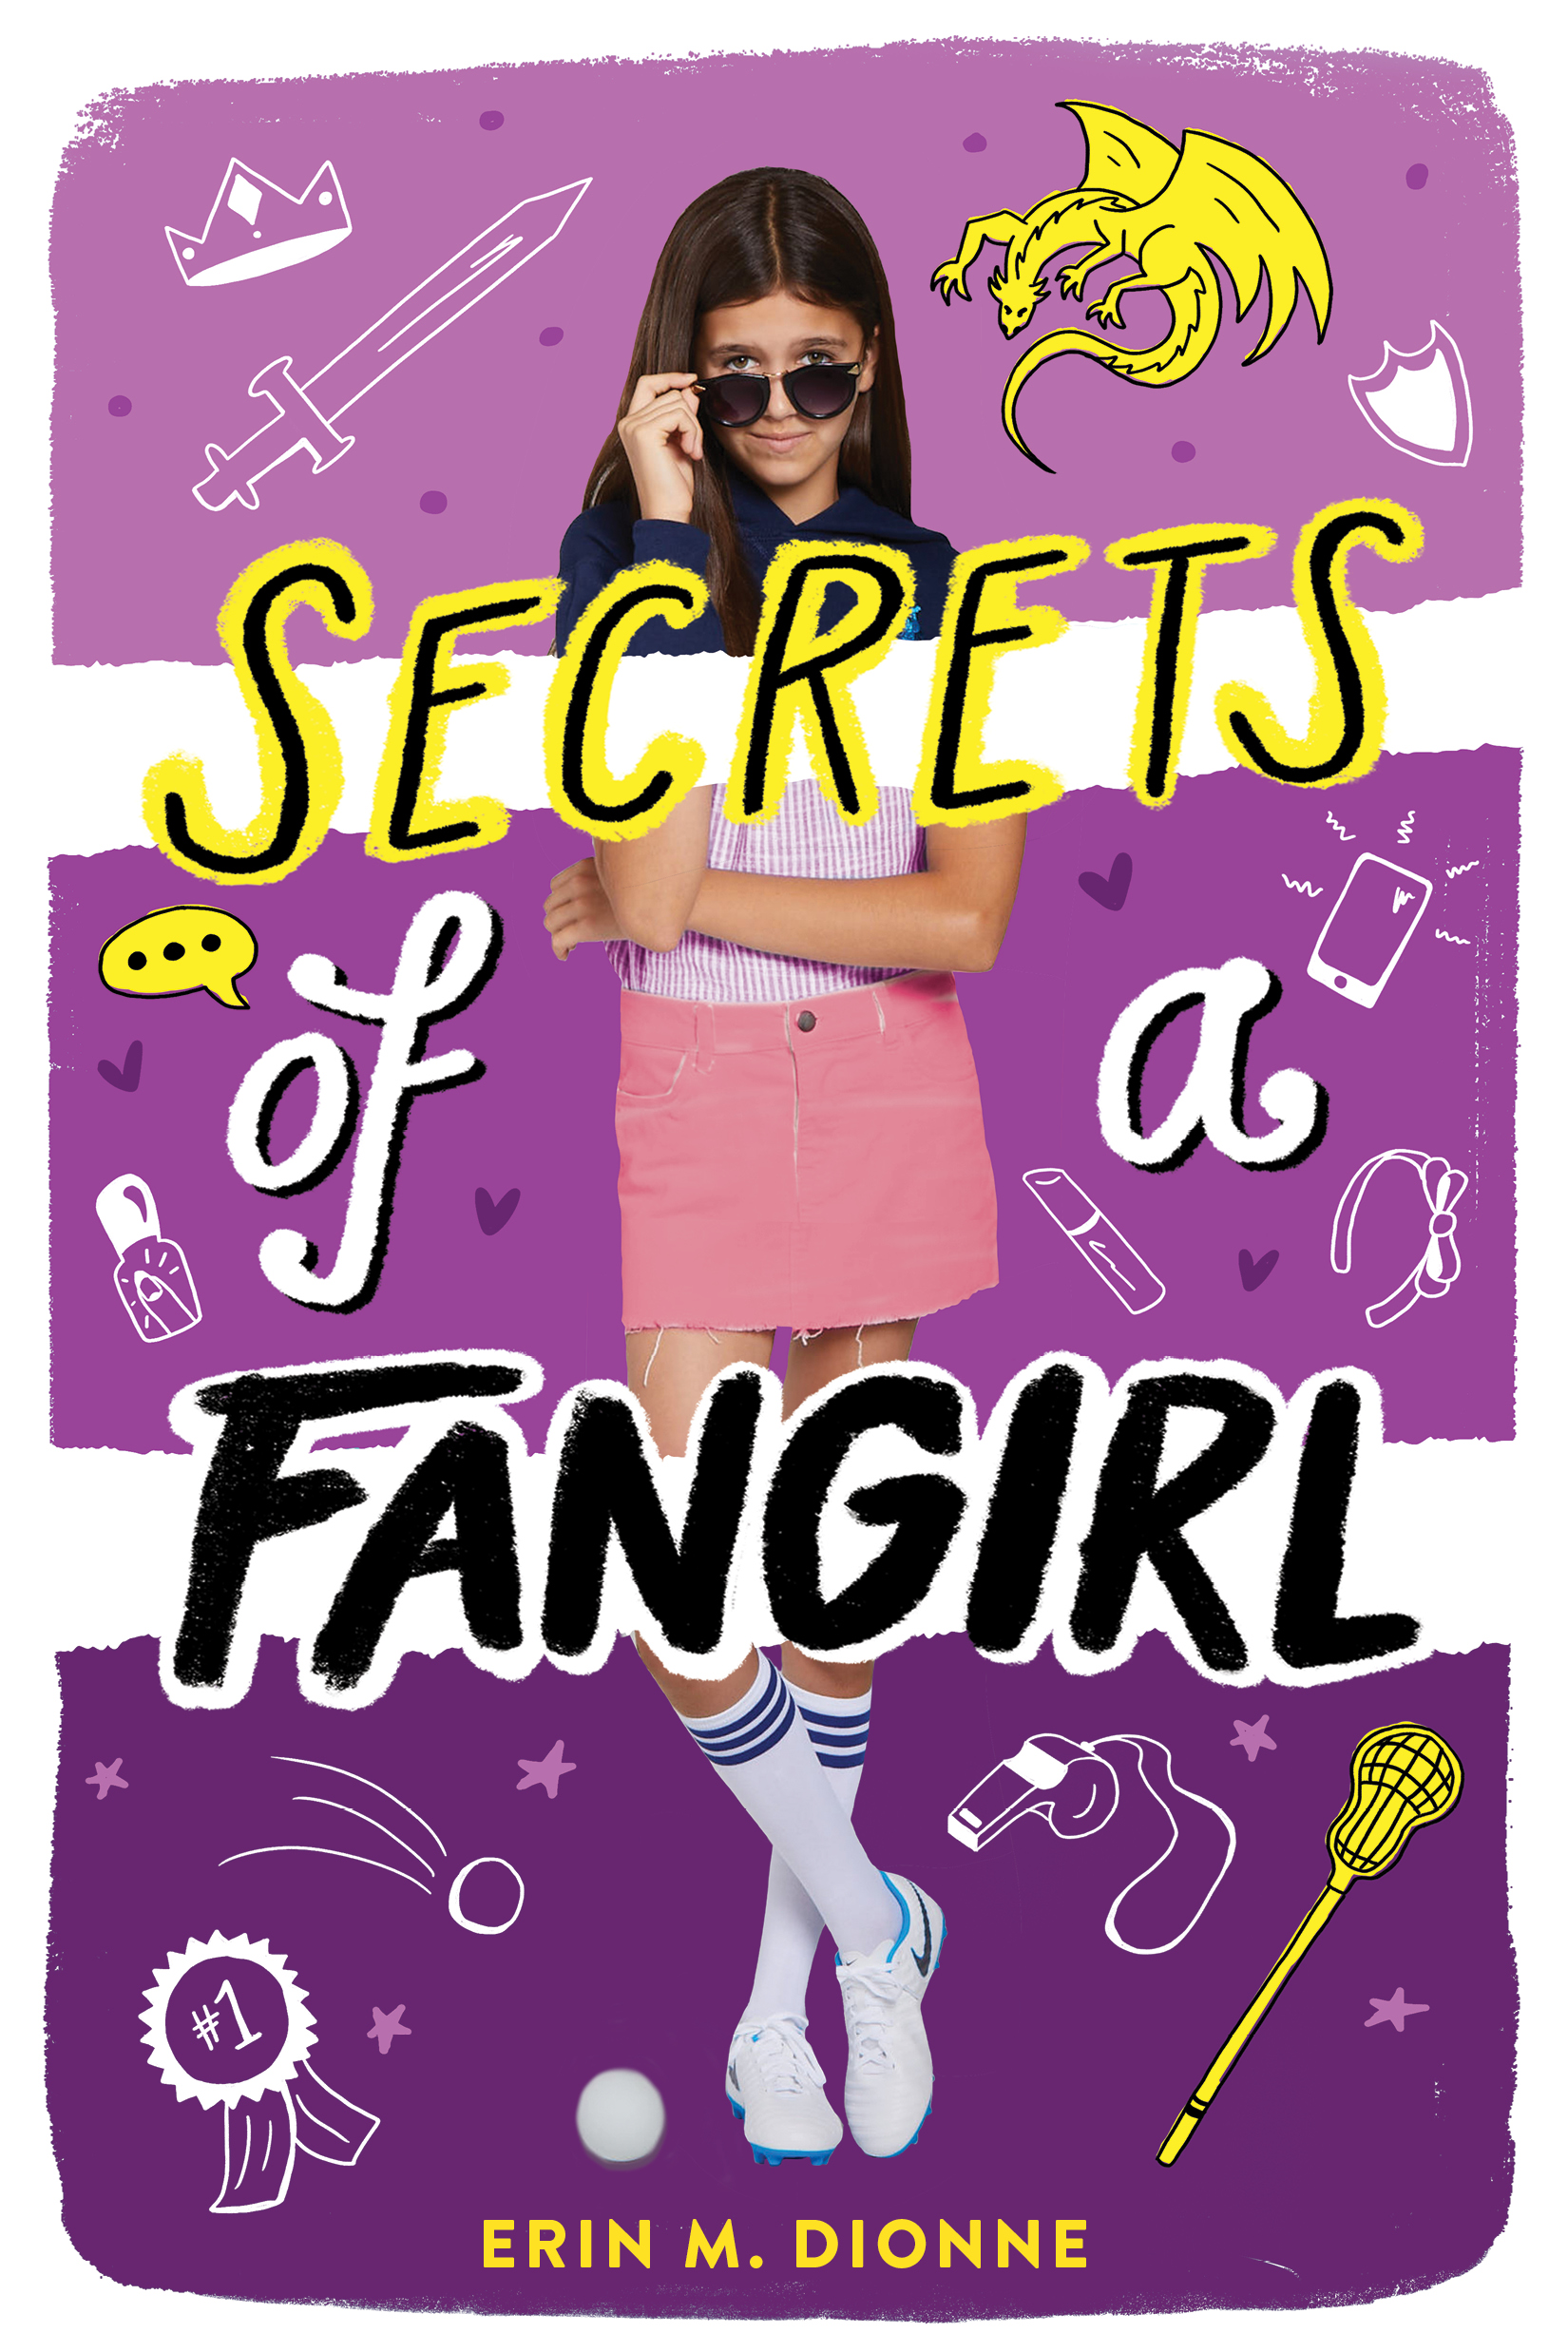 Dionne, Erin - Secrets of a Fangirl - Scholastic US, front cover.jpg